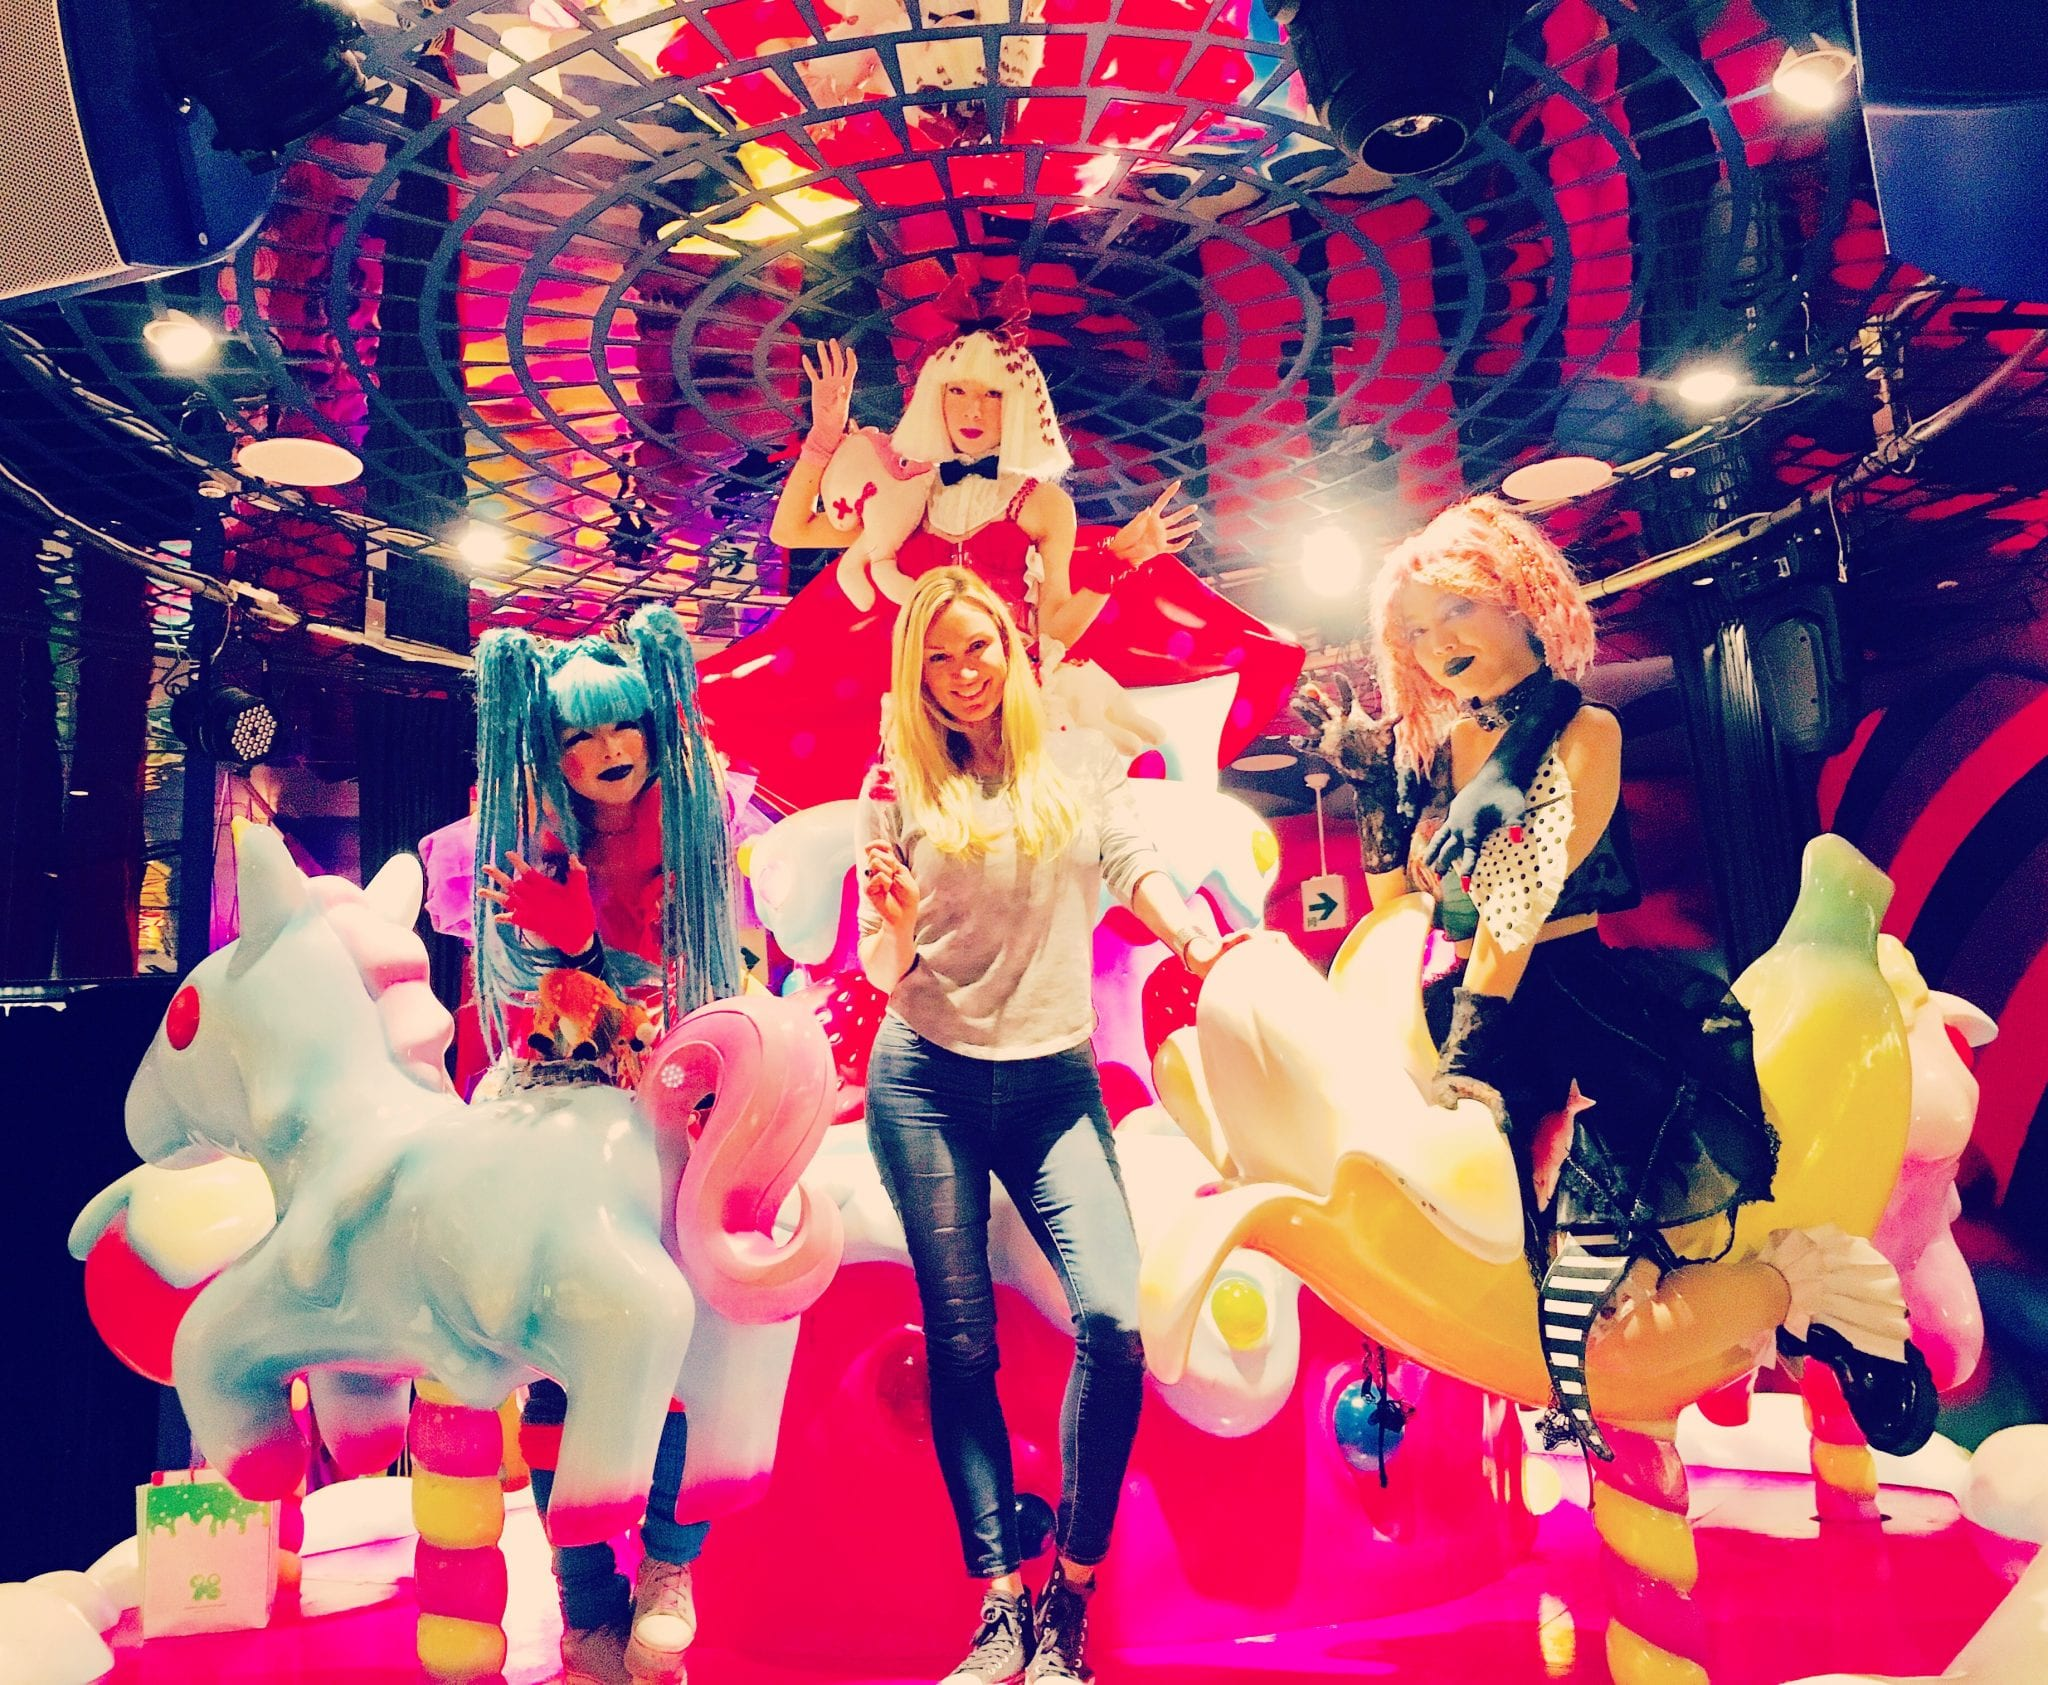 The Harajuku Girls at the Kawaii Monster Cafe in Tokyo Japan